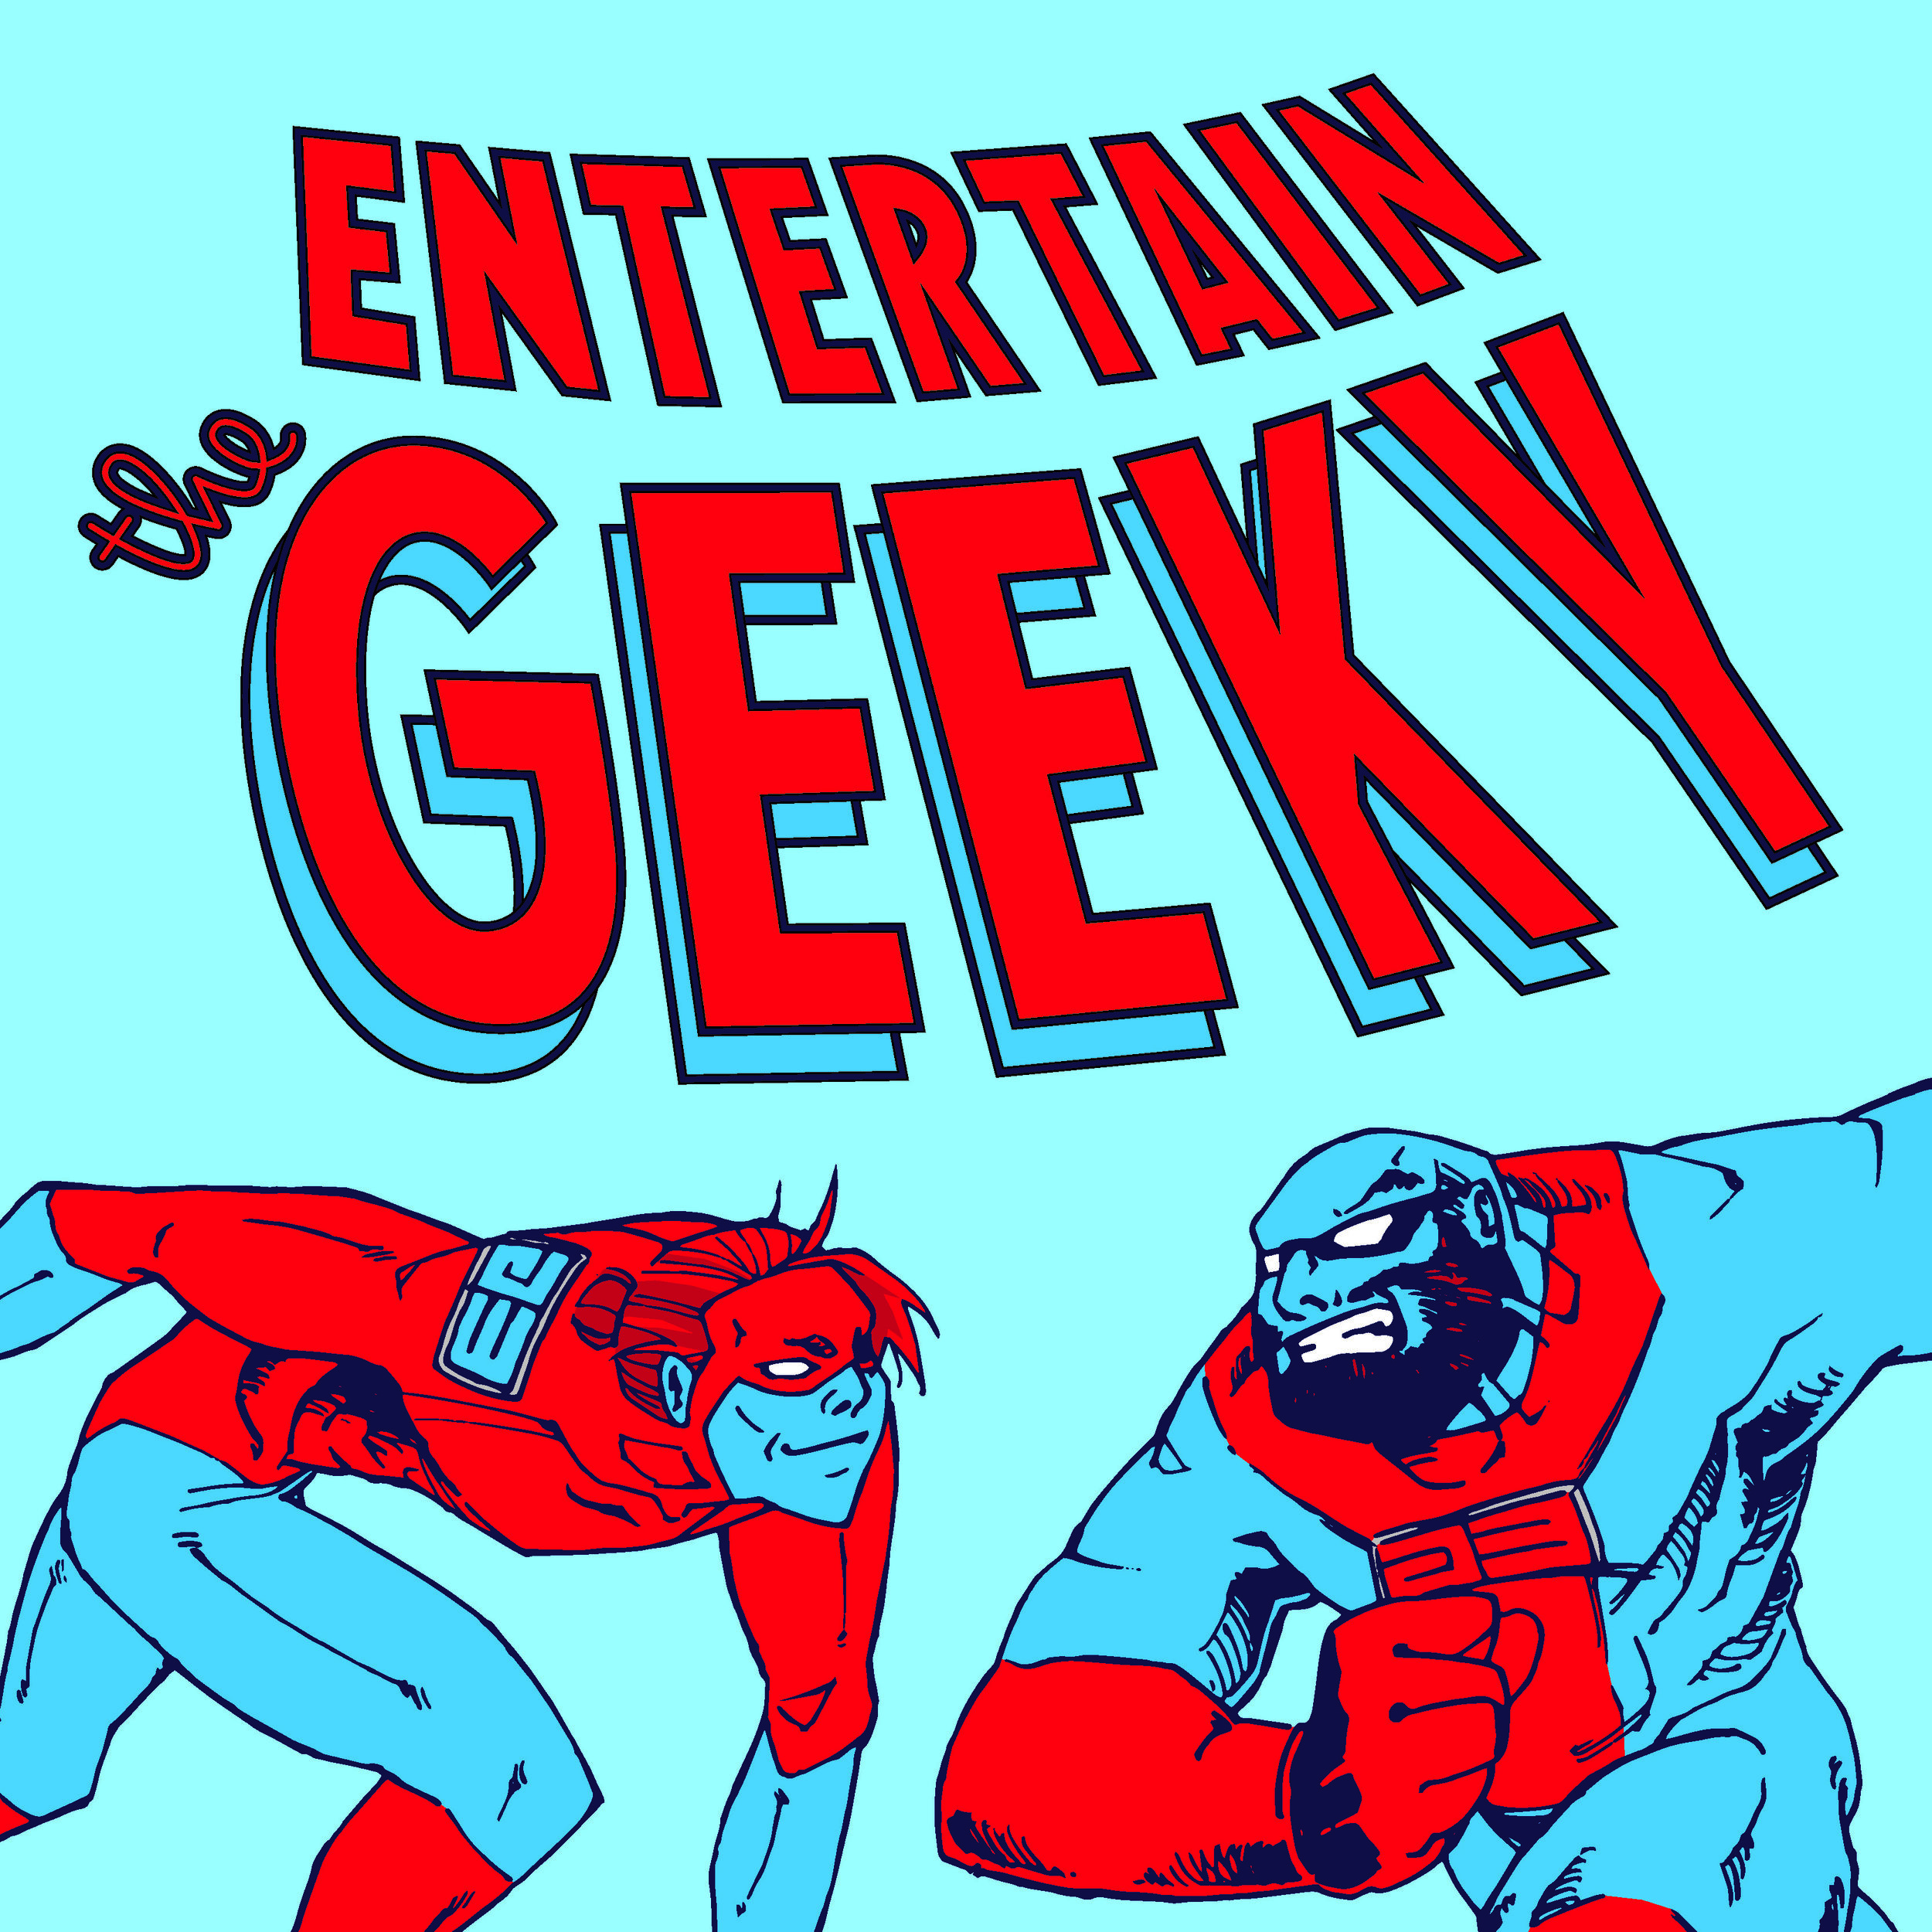 ETG LLC - Contact us via Email at entertainthegeeky@gmail.com